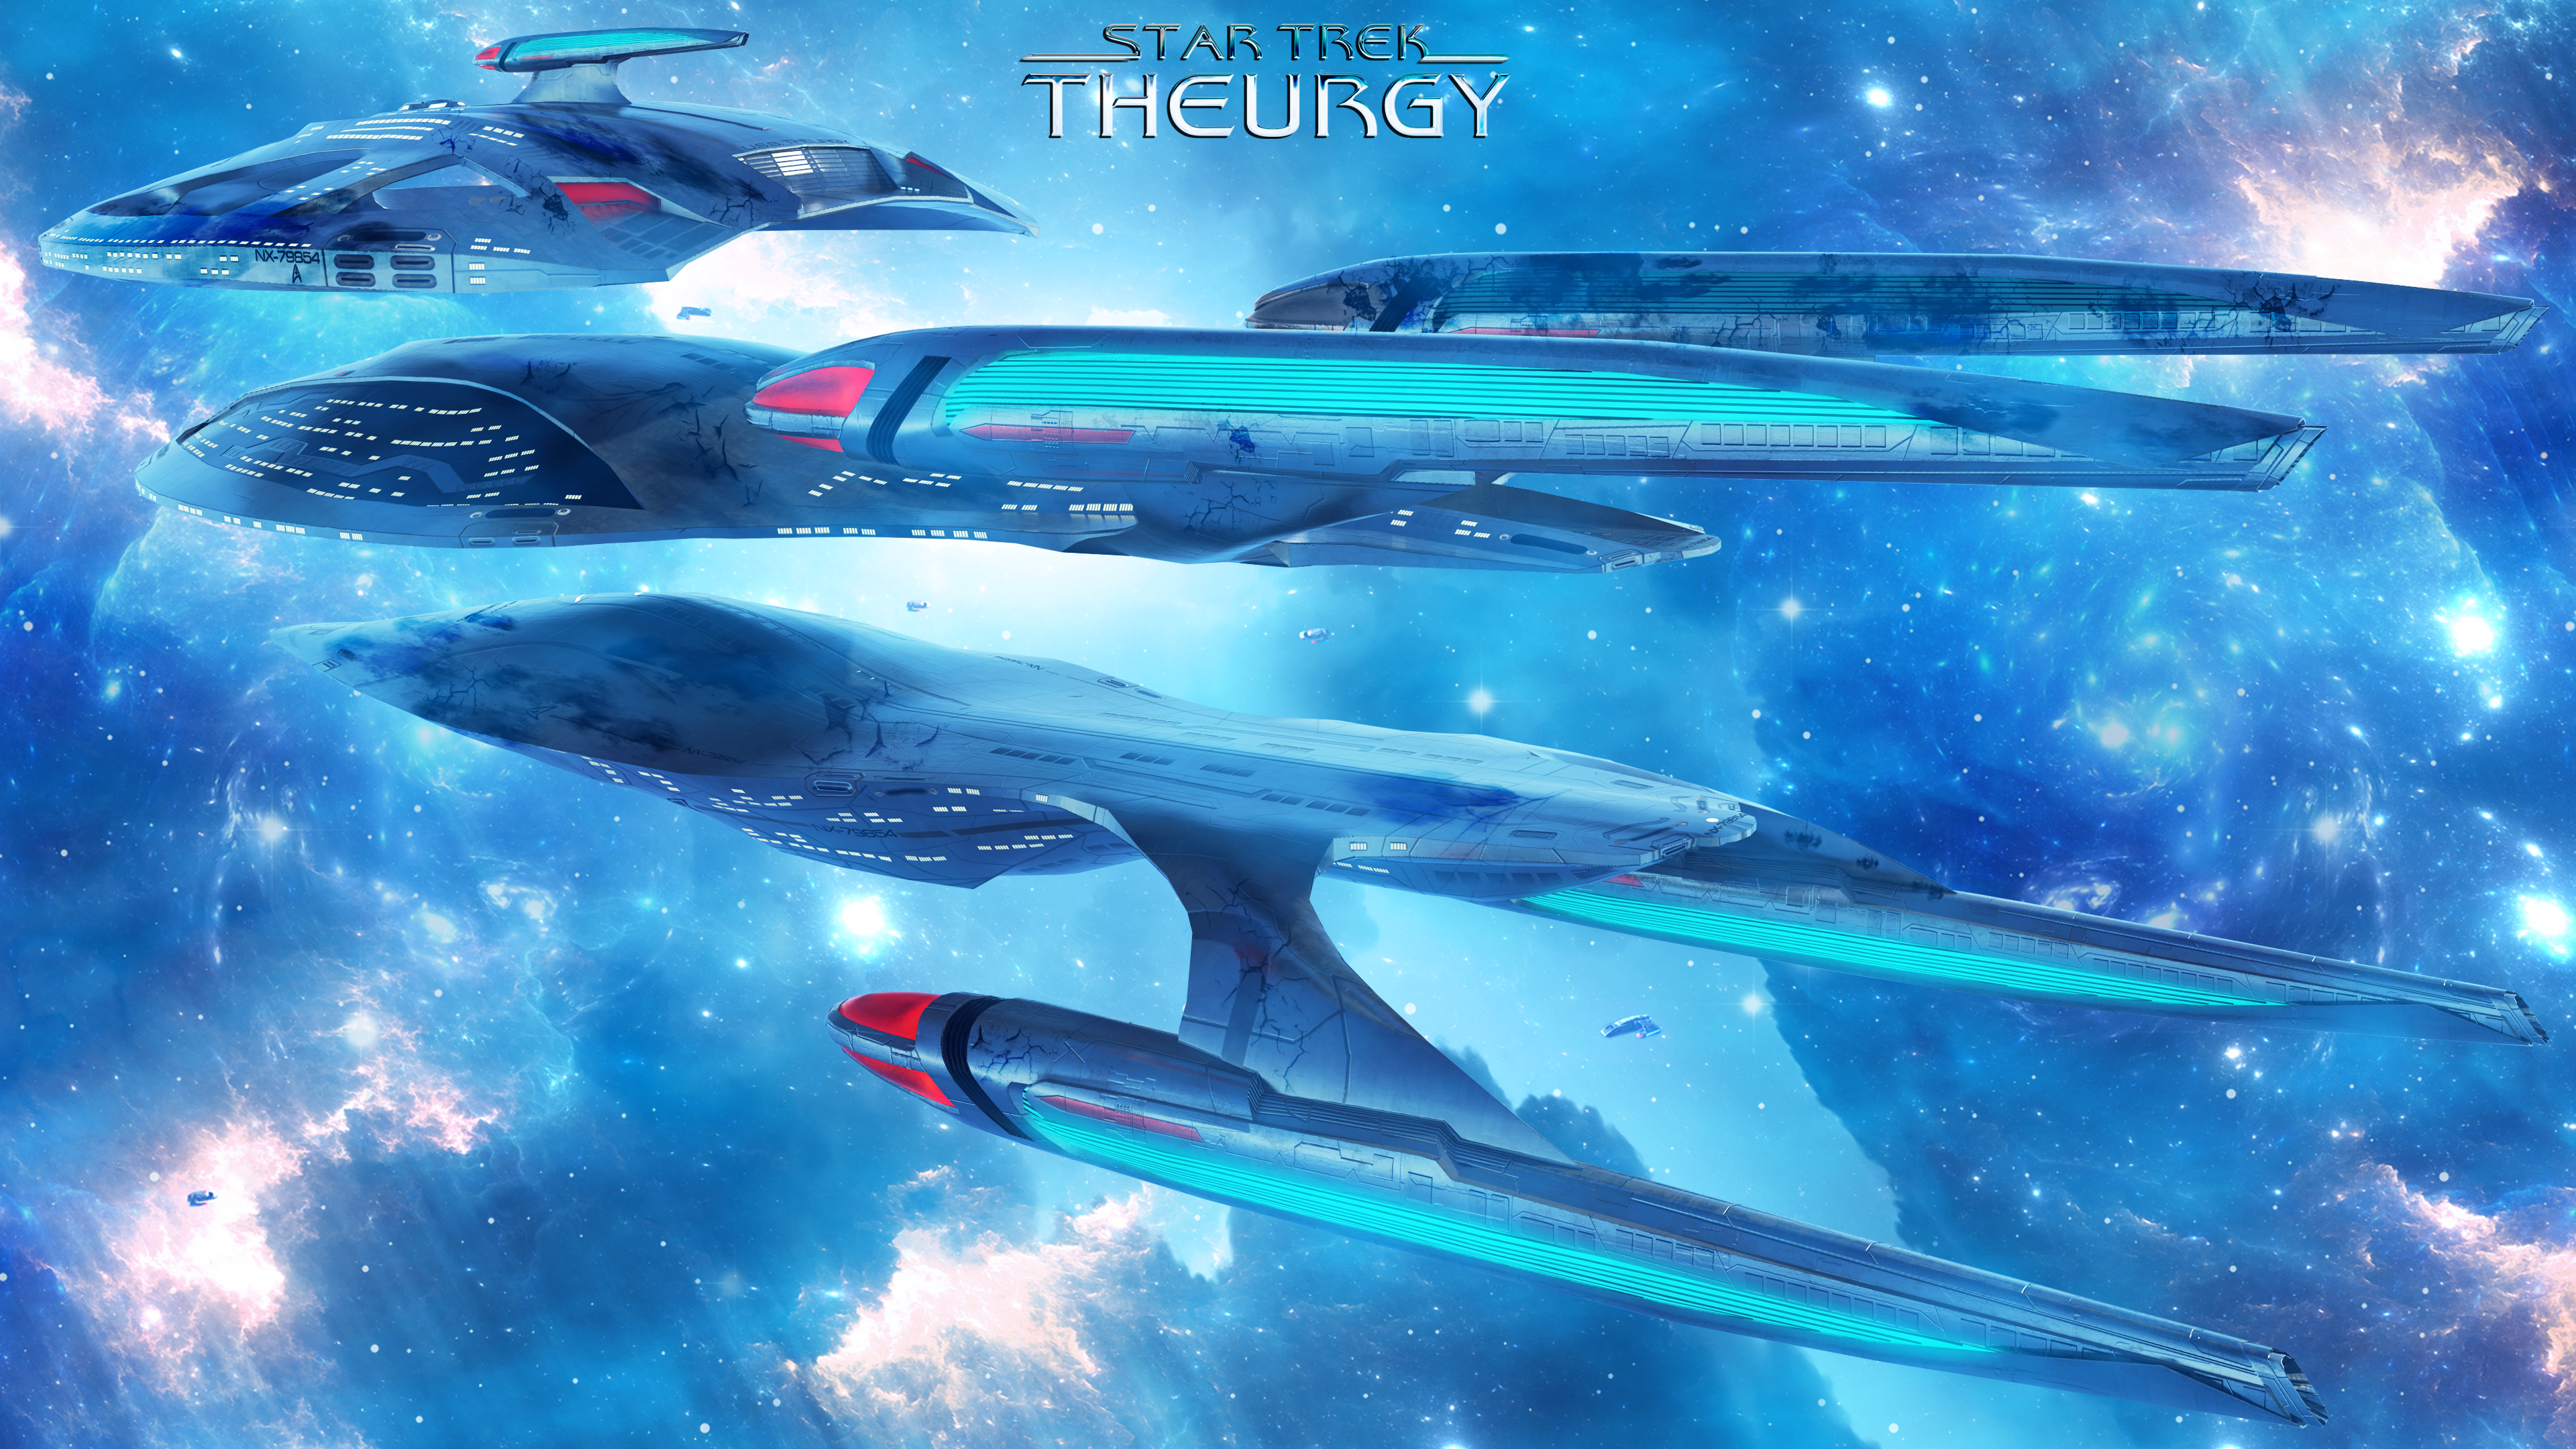 MVAM Damage Assessment | Star Trek: Theurgy